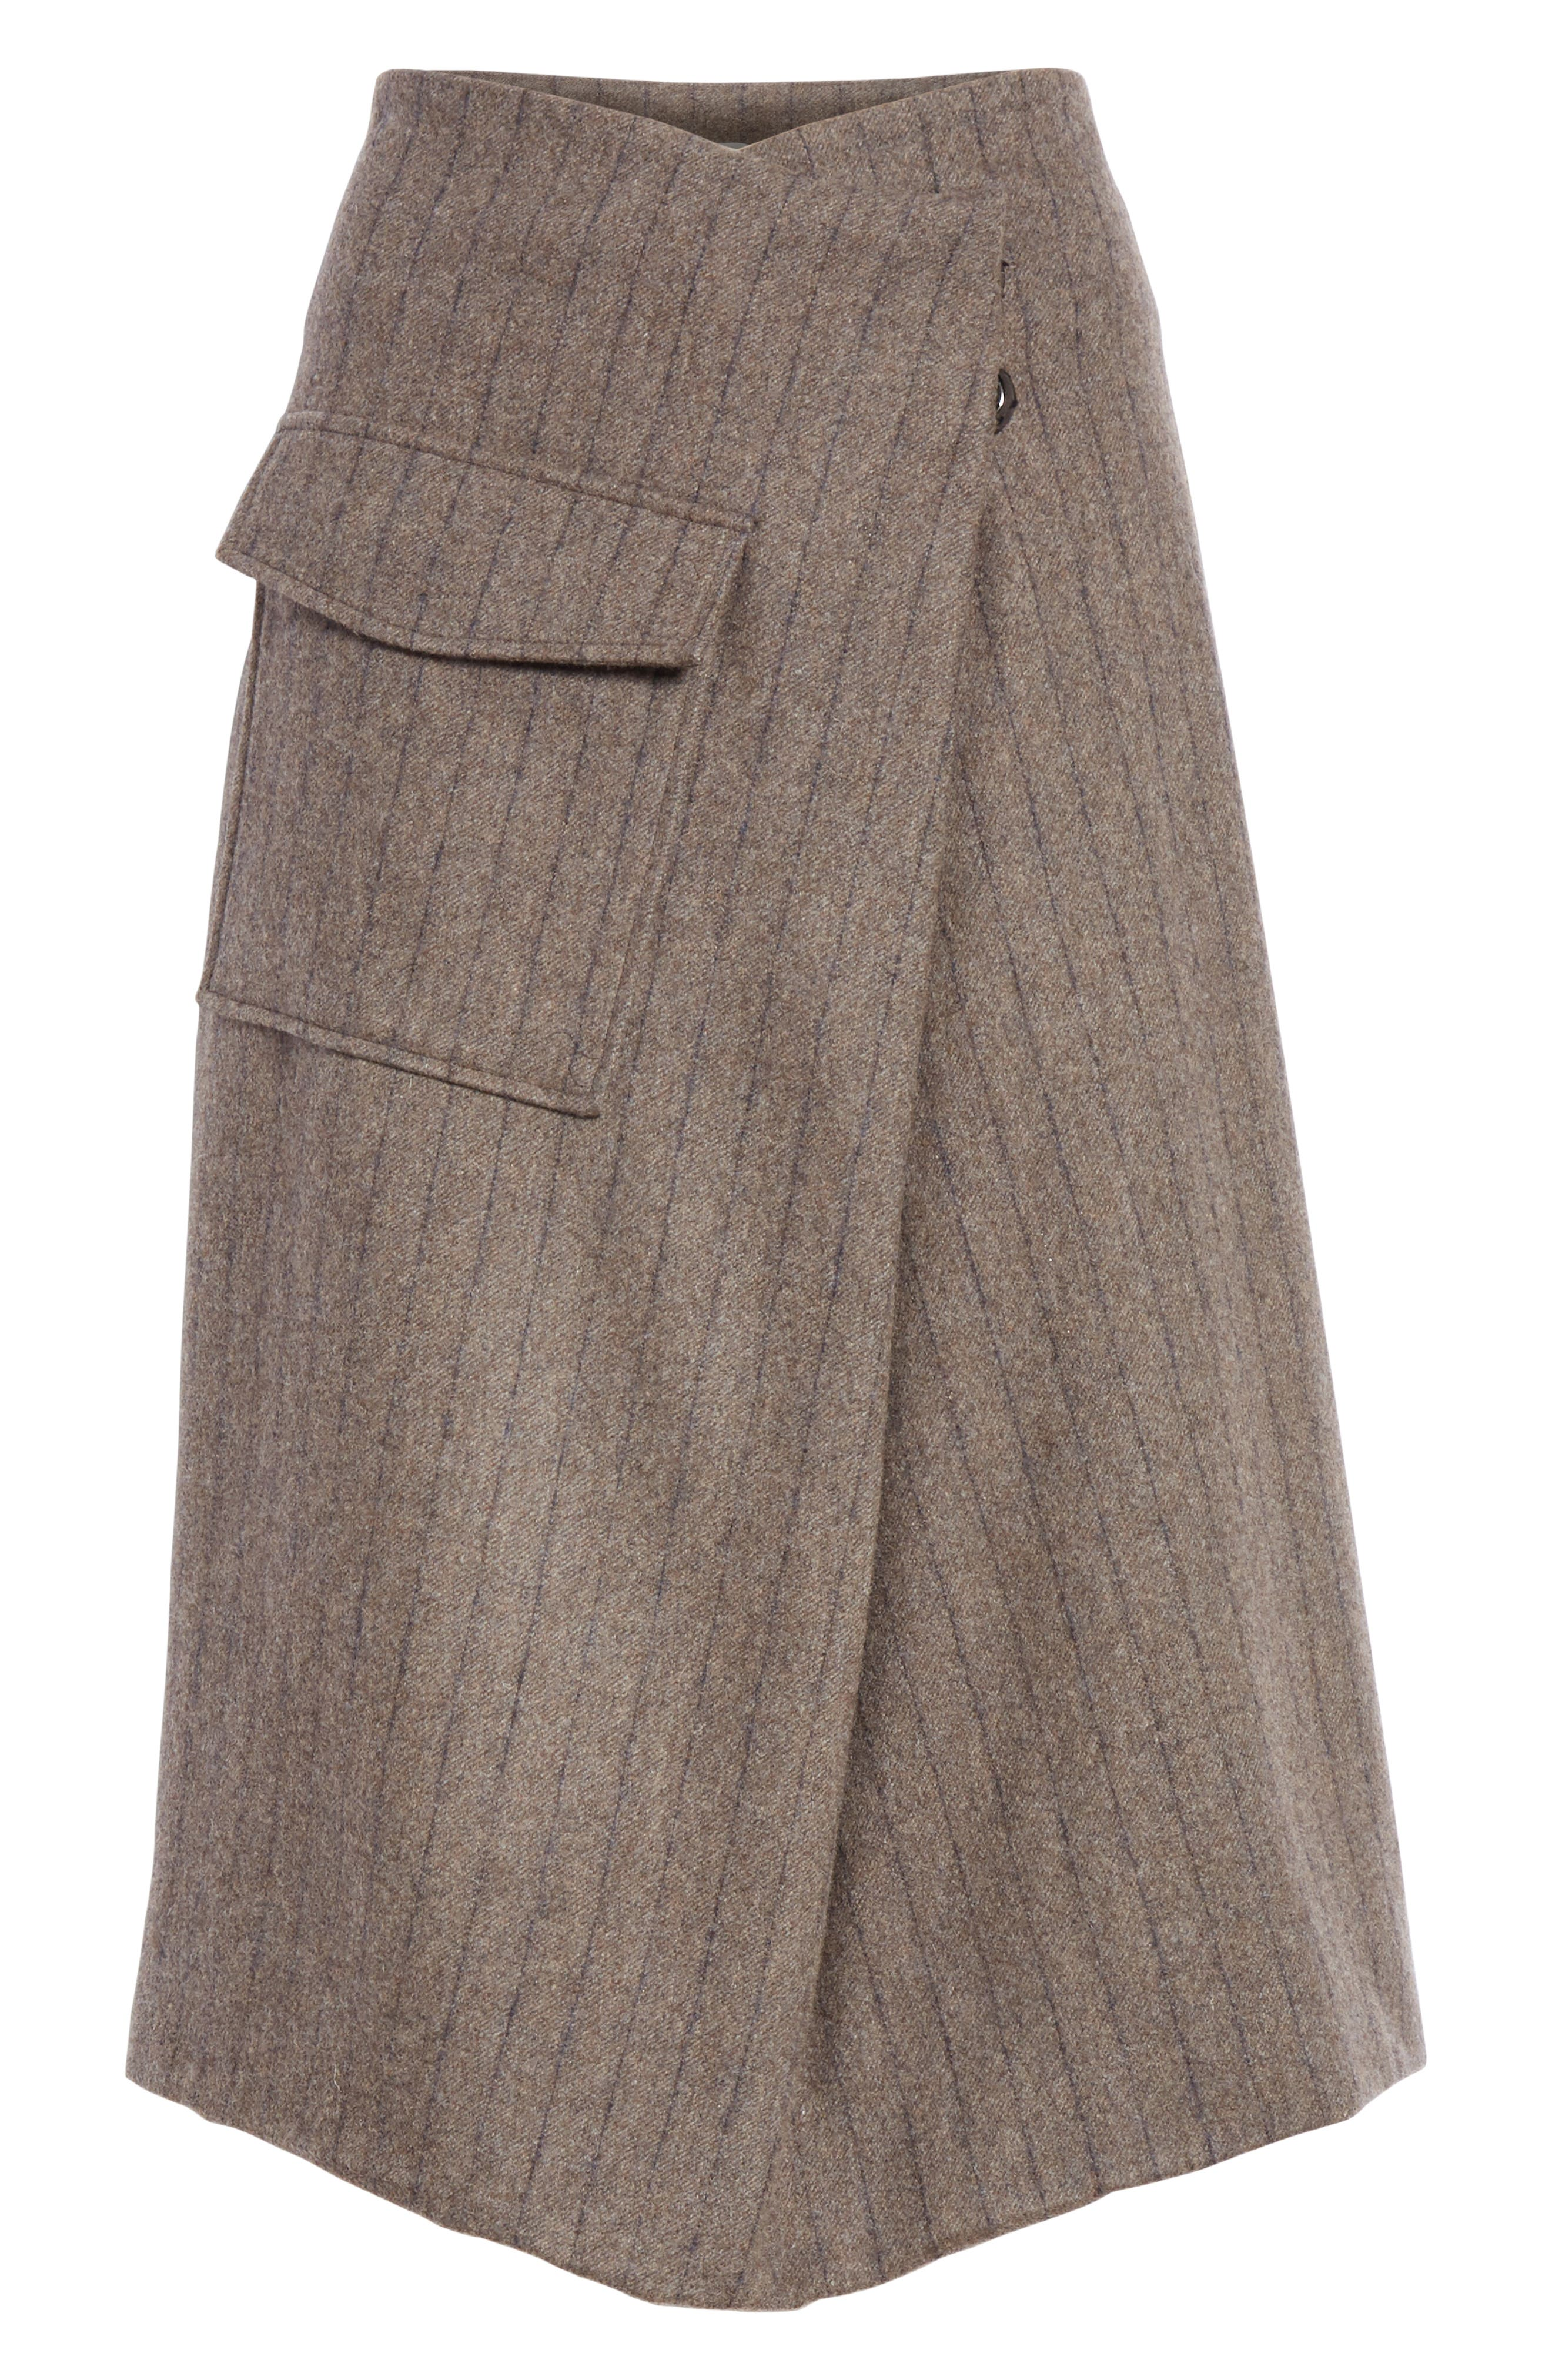 Noemie Pinstripe Wrap A-Line Skirt,                             Alternate thumbnail 6, color,                             STONE